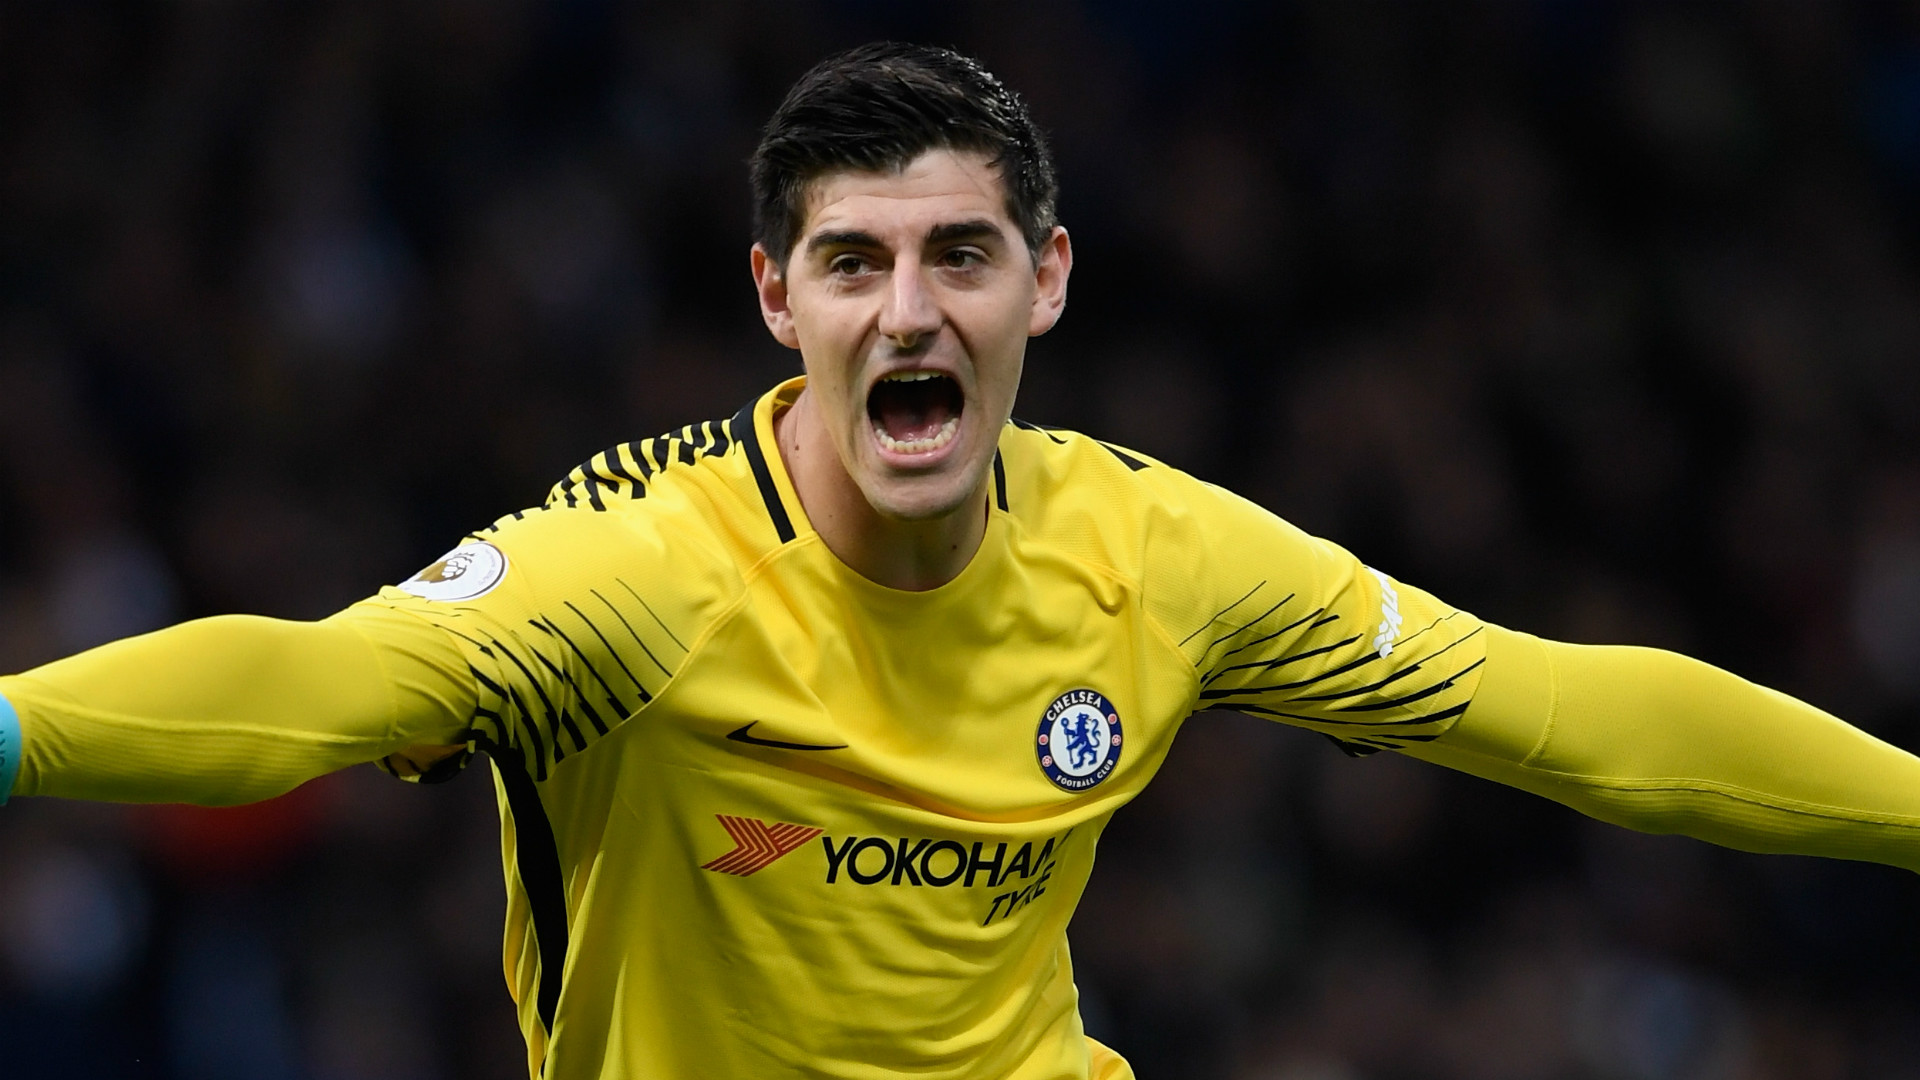 Thibaut Courtois transfer: Chelsea confirm €35m goalkeeper sale to Real Madrid as Mateo Kovacic moves to London   Goal.com